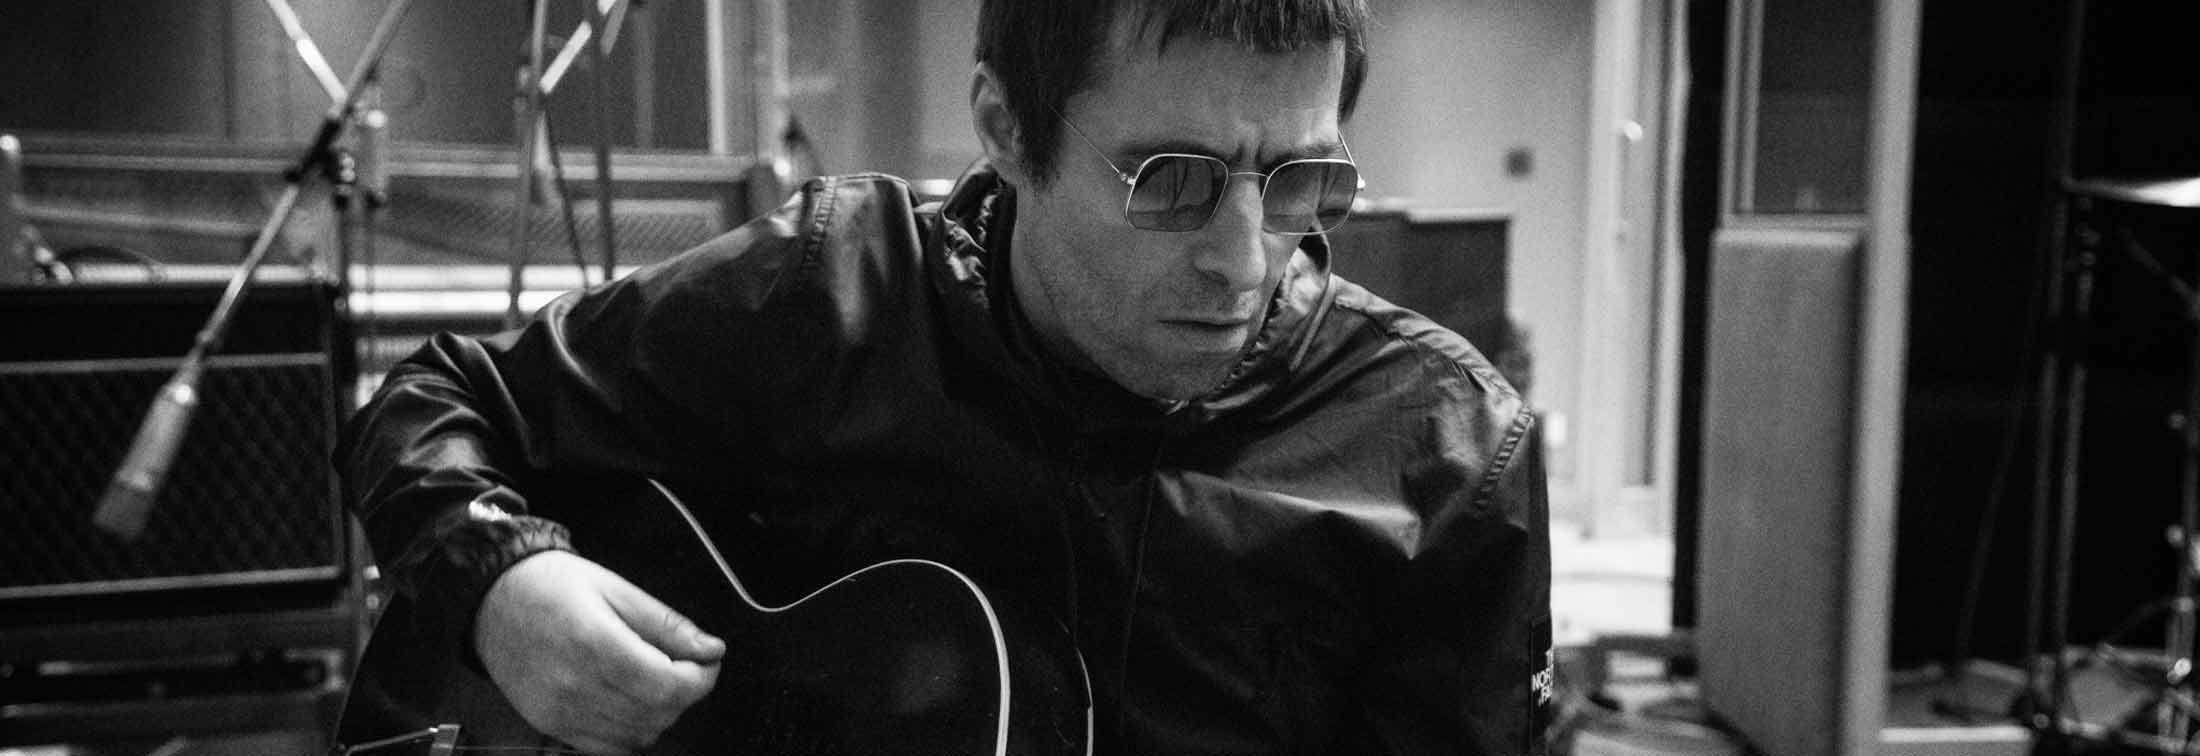 Liam Gallagher: As It Was - Half insight, half PR exercise